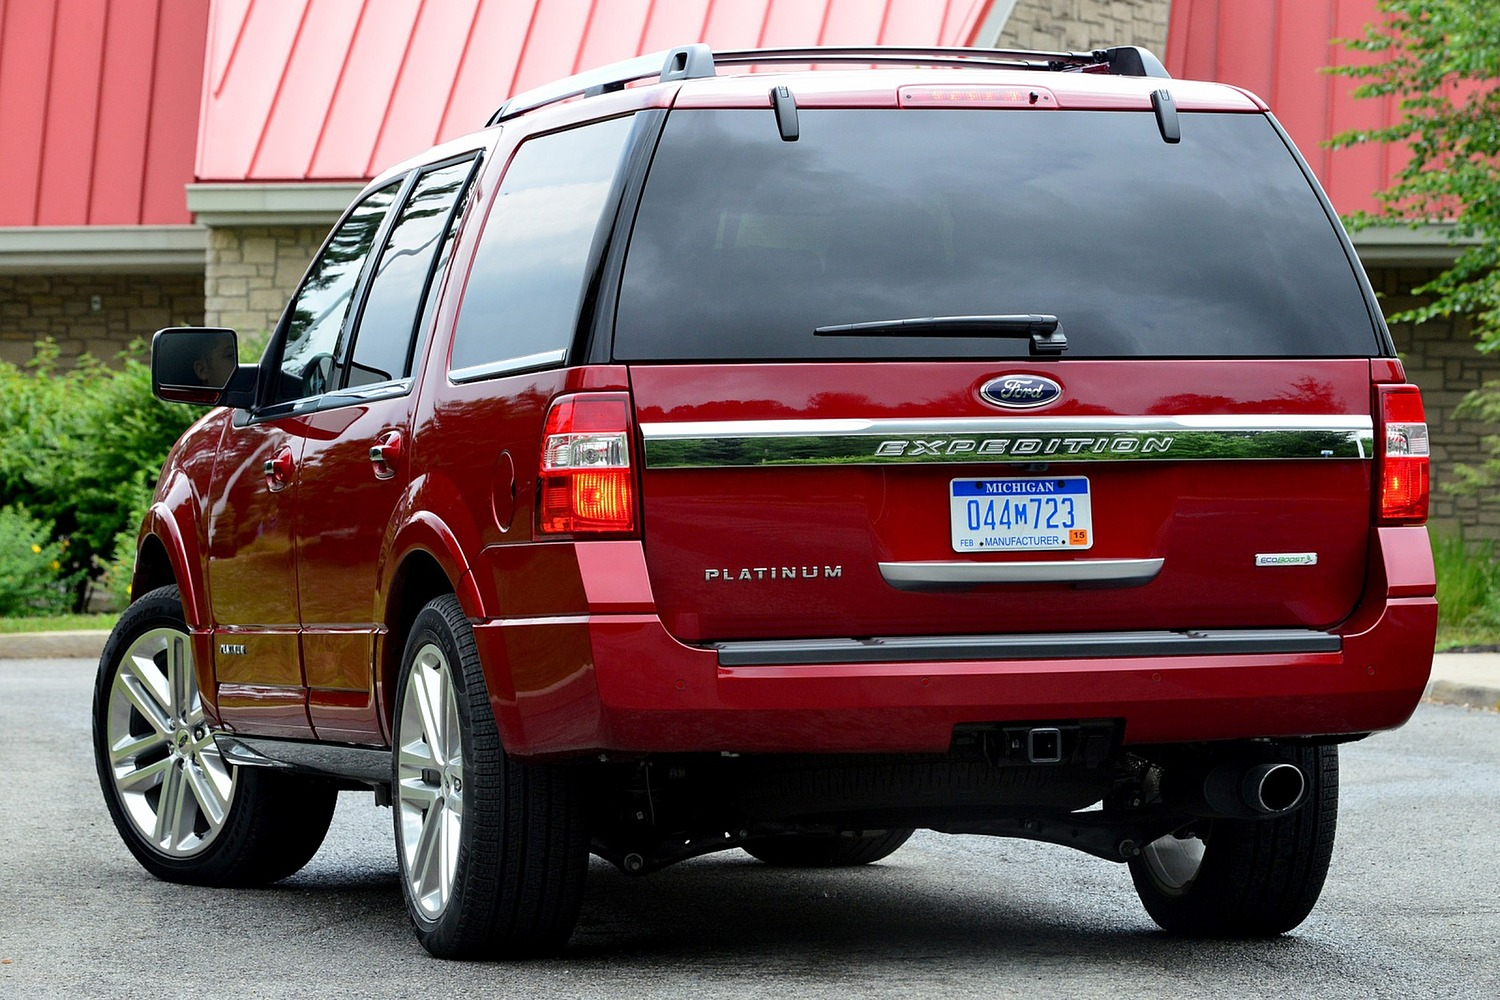 Ford Expedition Platinum 4dr SUV Exterior Shown (2016 model year shown)